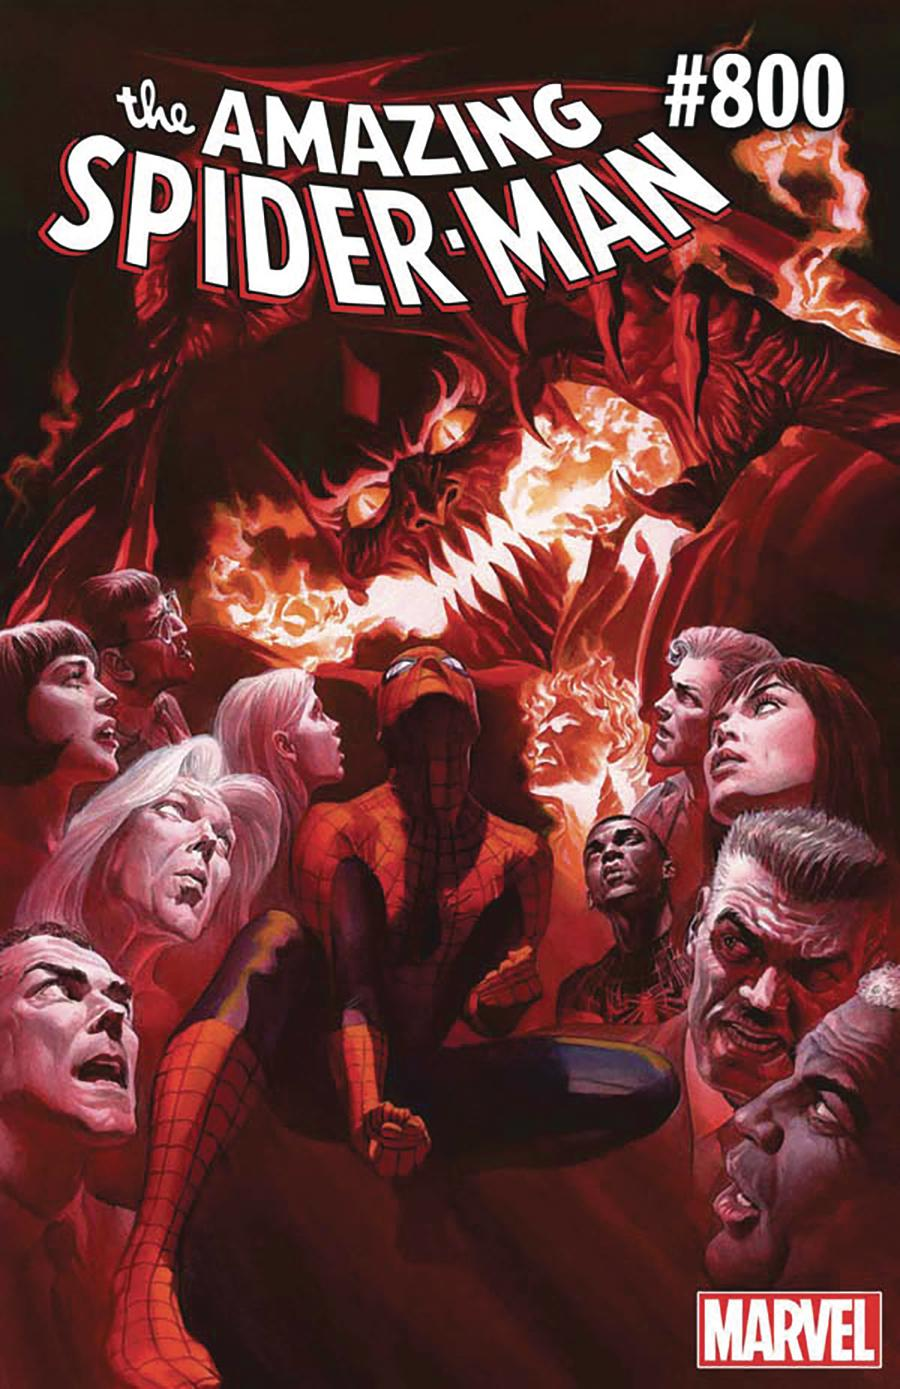 Amazing Spider-Man Vol 4 #800 Cover V DF Signed By Wade Von Grawbadger